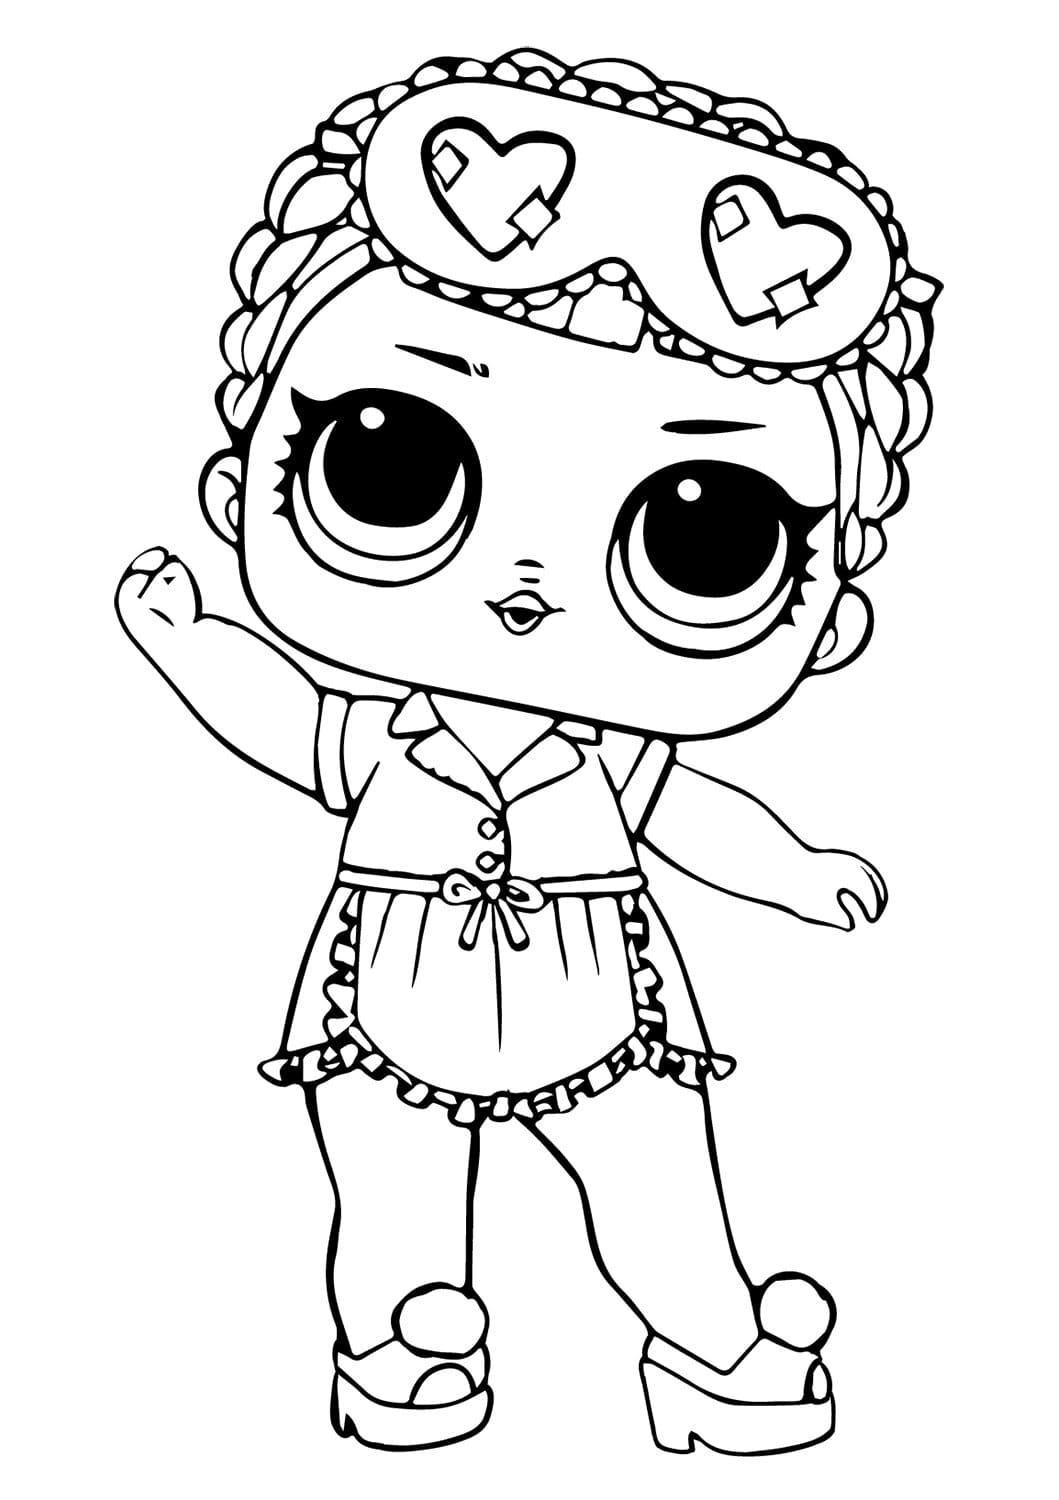 Lol Suprise Doll Sleeping Coloring Page